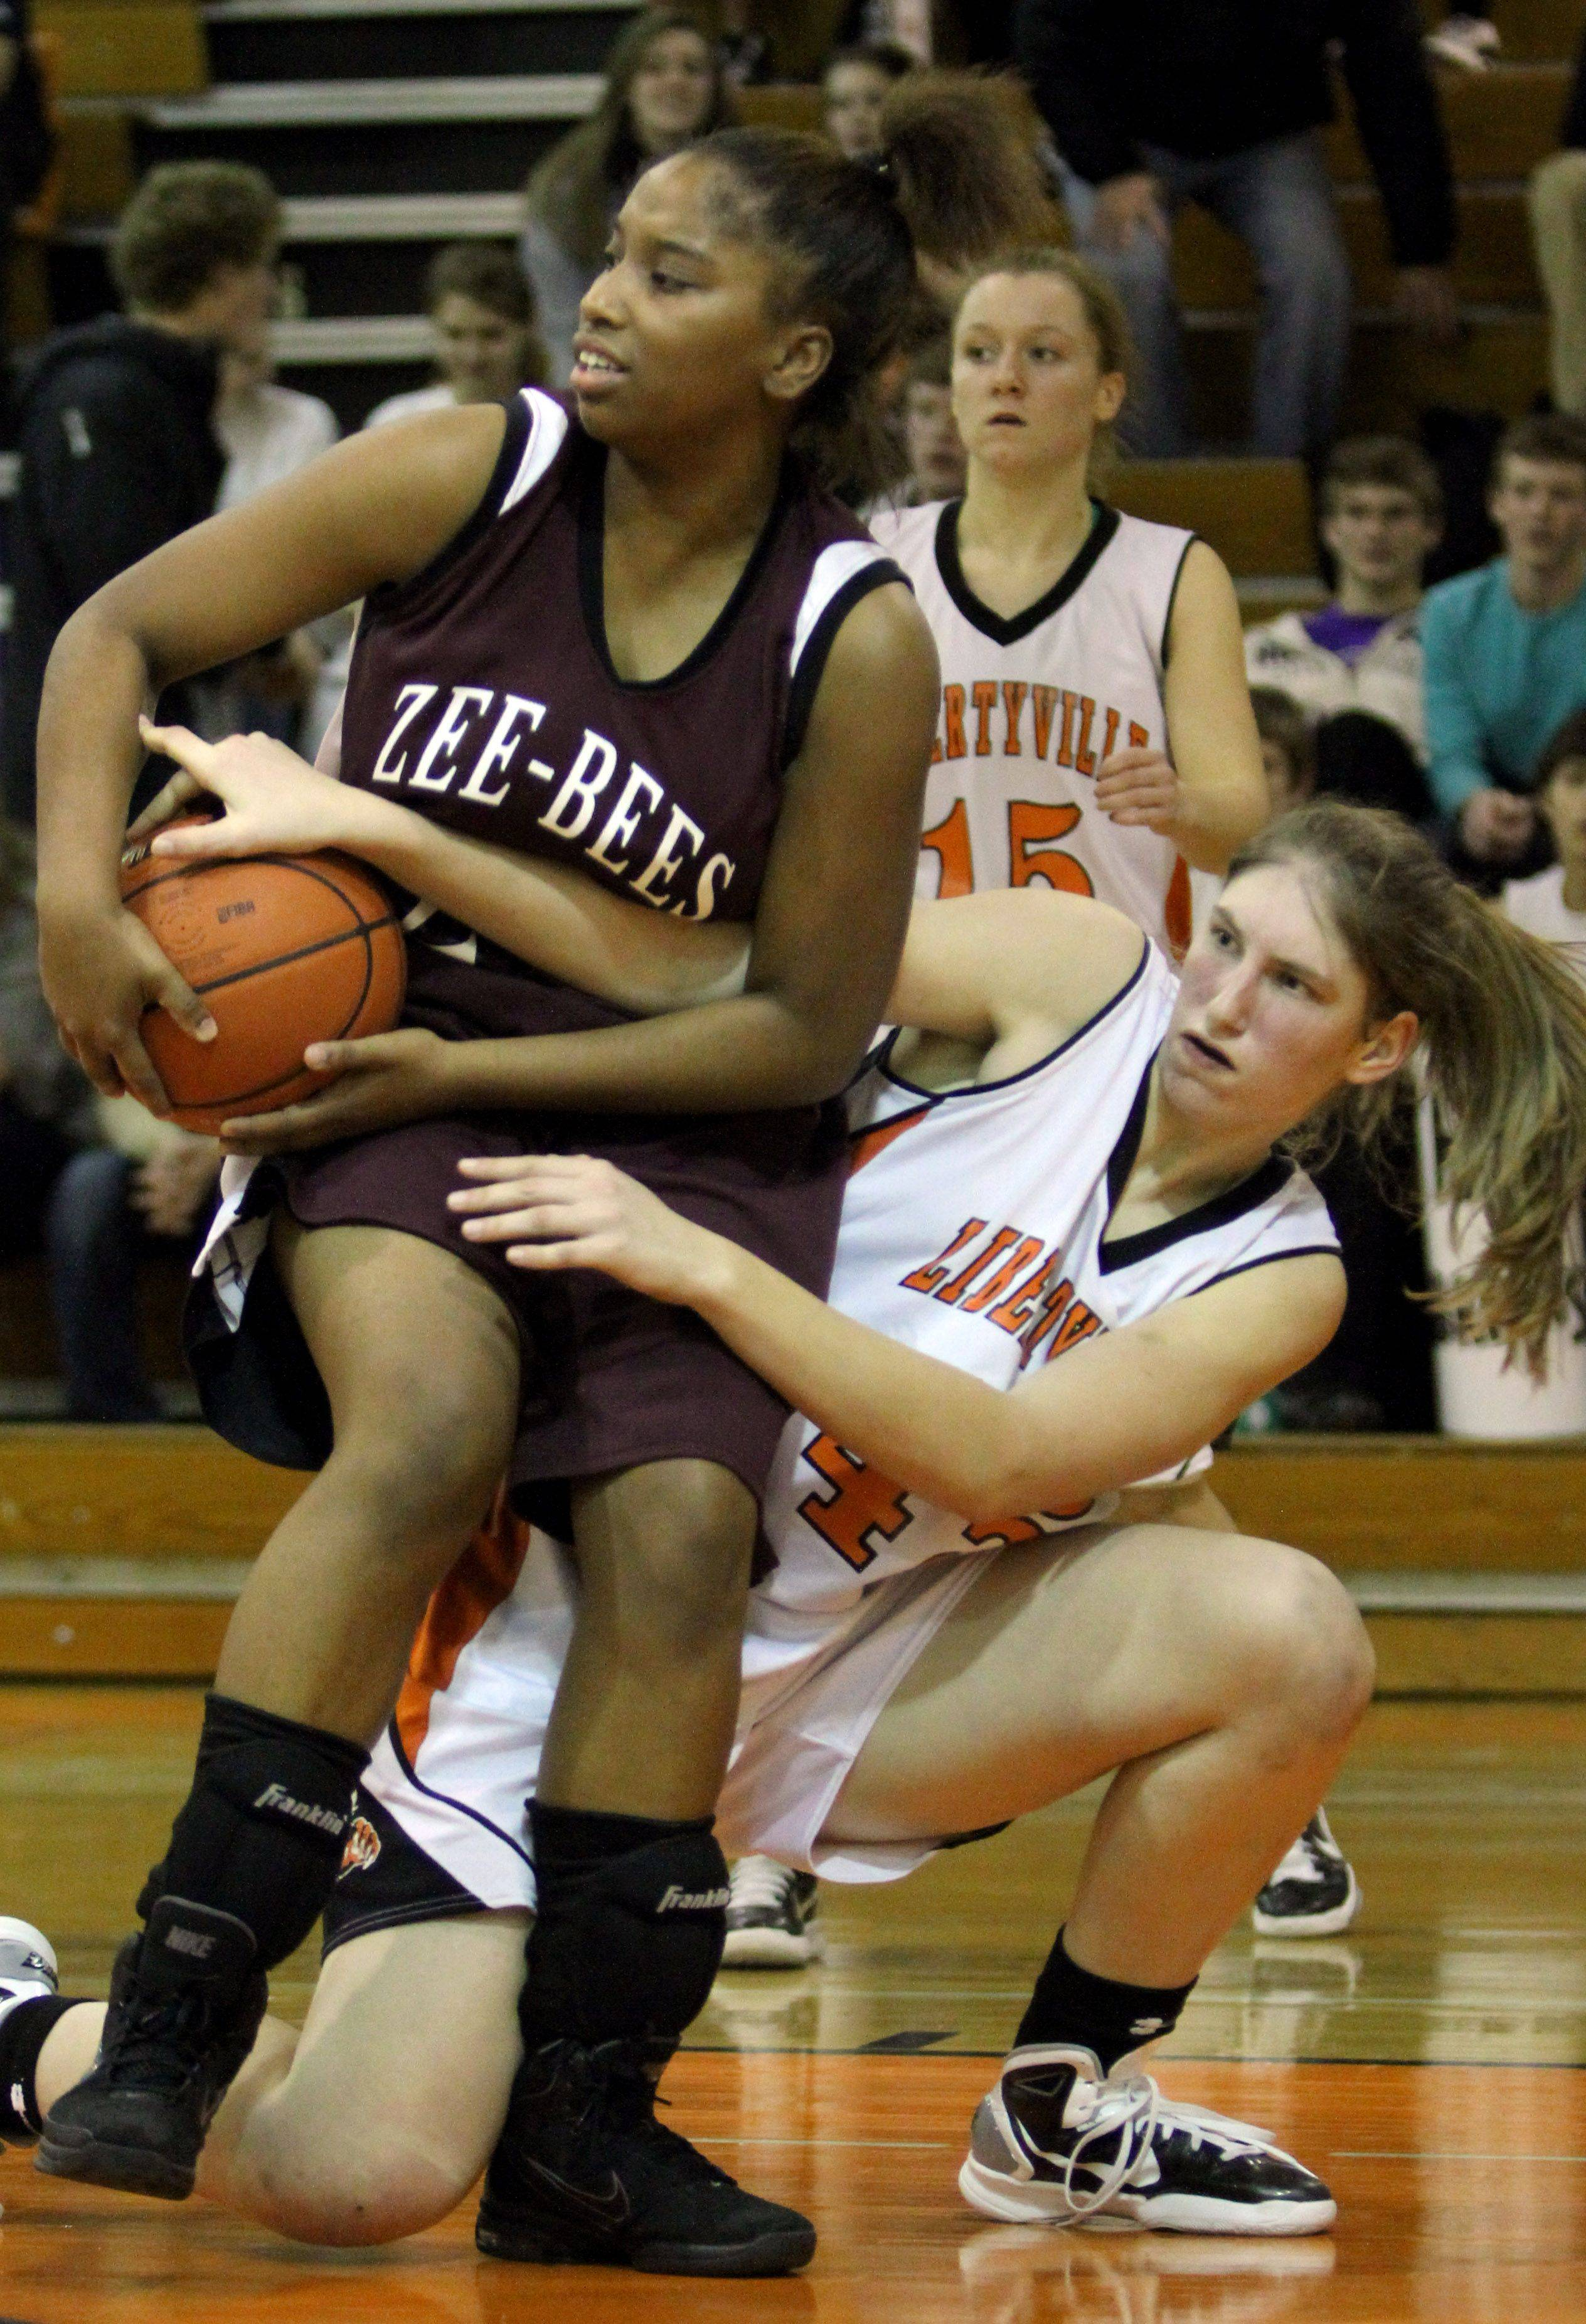 Libertyville's Nicole Kruckman, right, and Zion's Samantha Rodriguez battle for a loose ball.